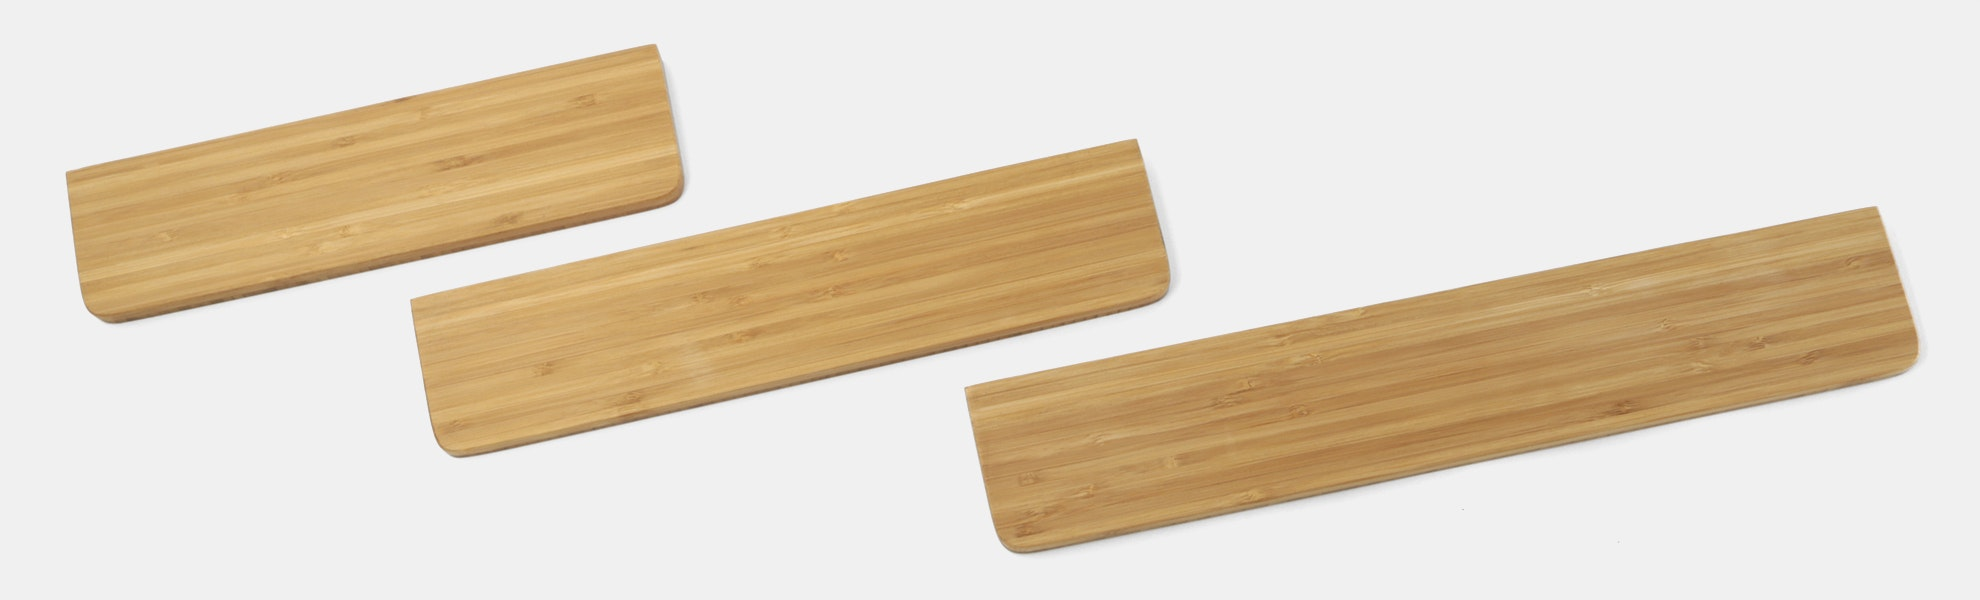 Royal Glam Bamboo Wrist Rests